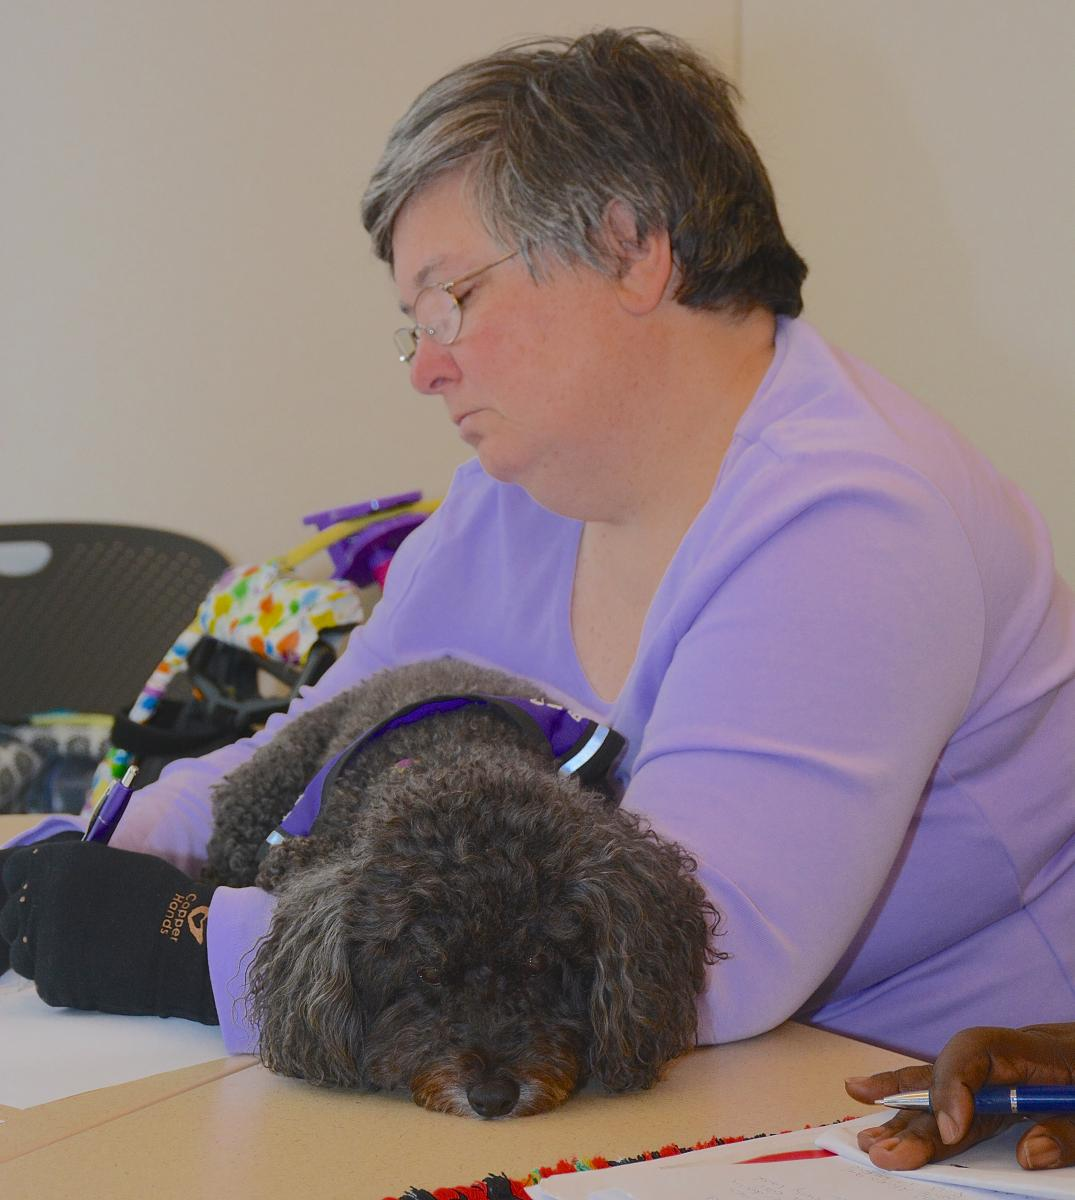 Peg Meerkatz, who battles progressive multiple sclerosis and diabetes, contributes a line to a poem started by breast cancer survivor Sheila Thompson. Her service dog, Esperanza, a bichon and poodle mix, relaxes in her arms as Meerkatz adds the finishing touch.